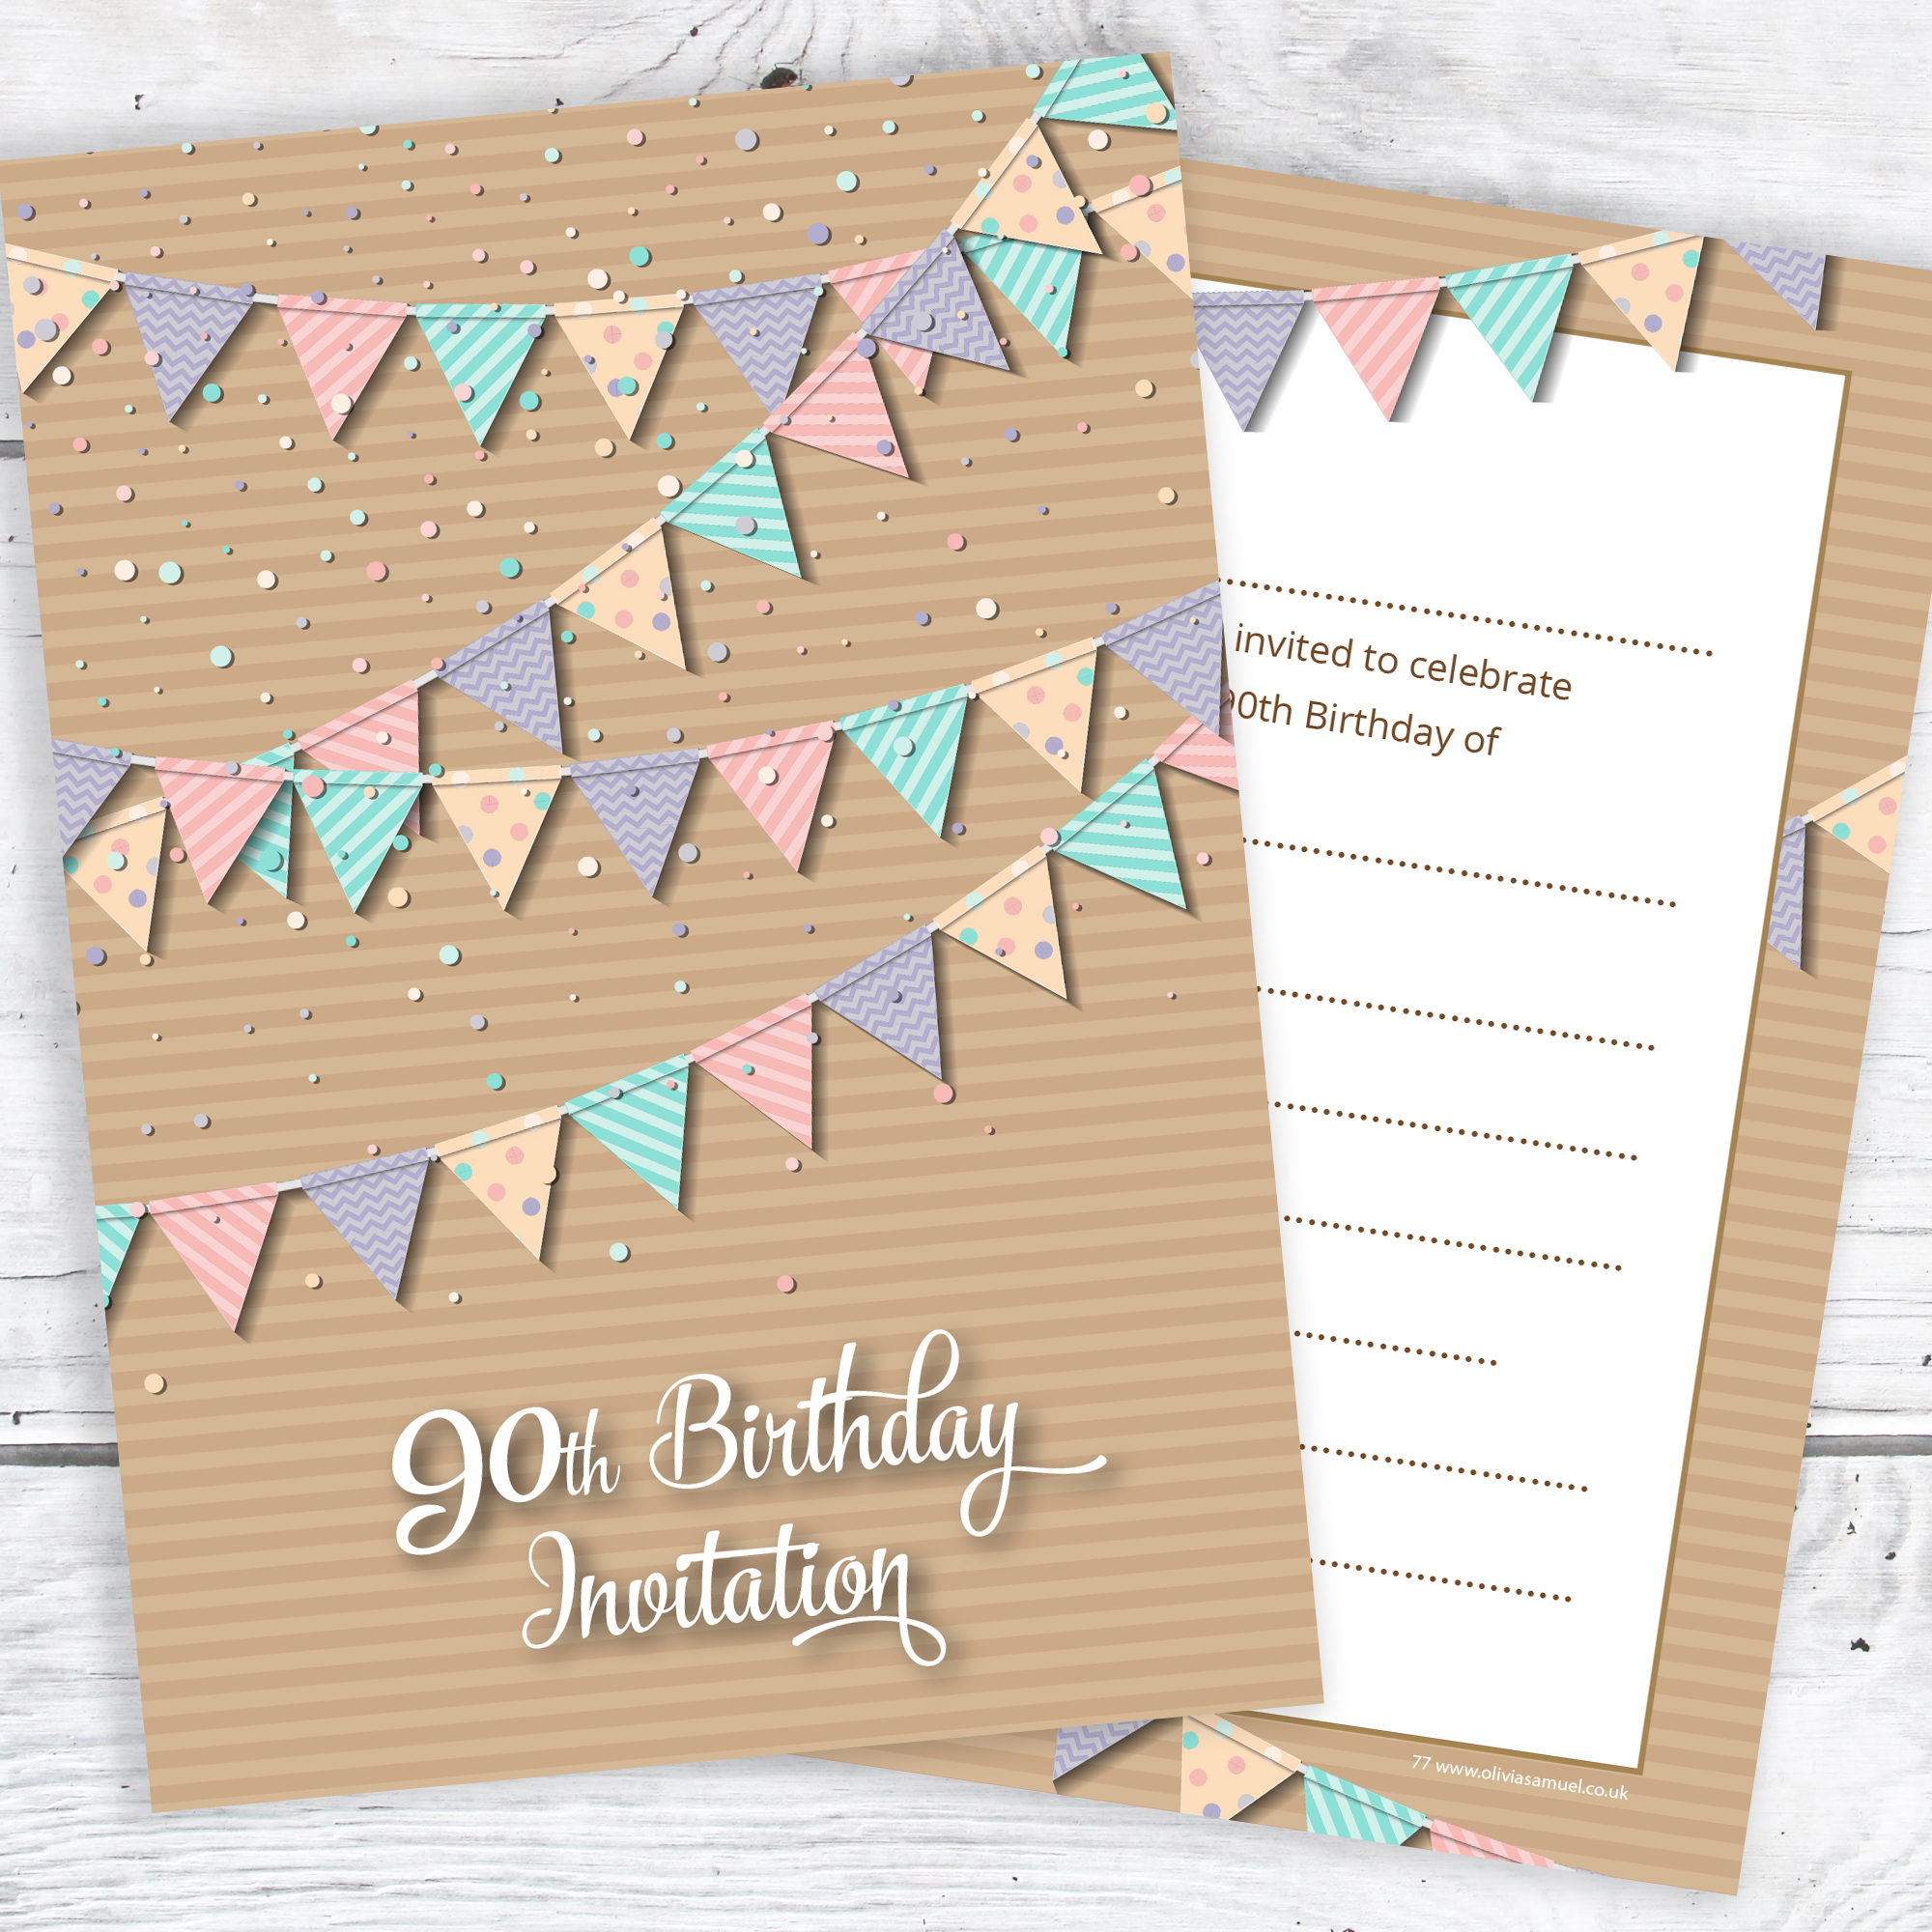 90th Birthday Party Invitations Pastel Bunting Design Postcard